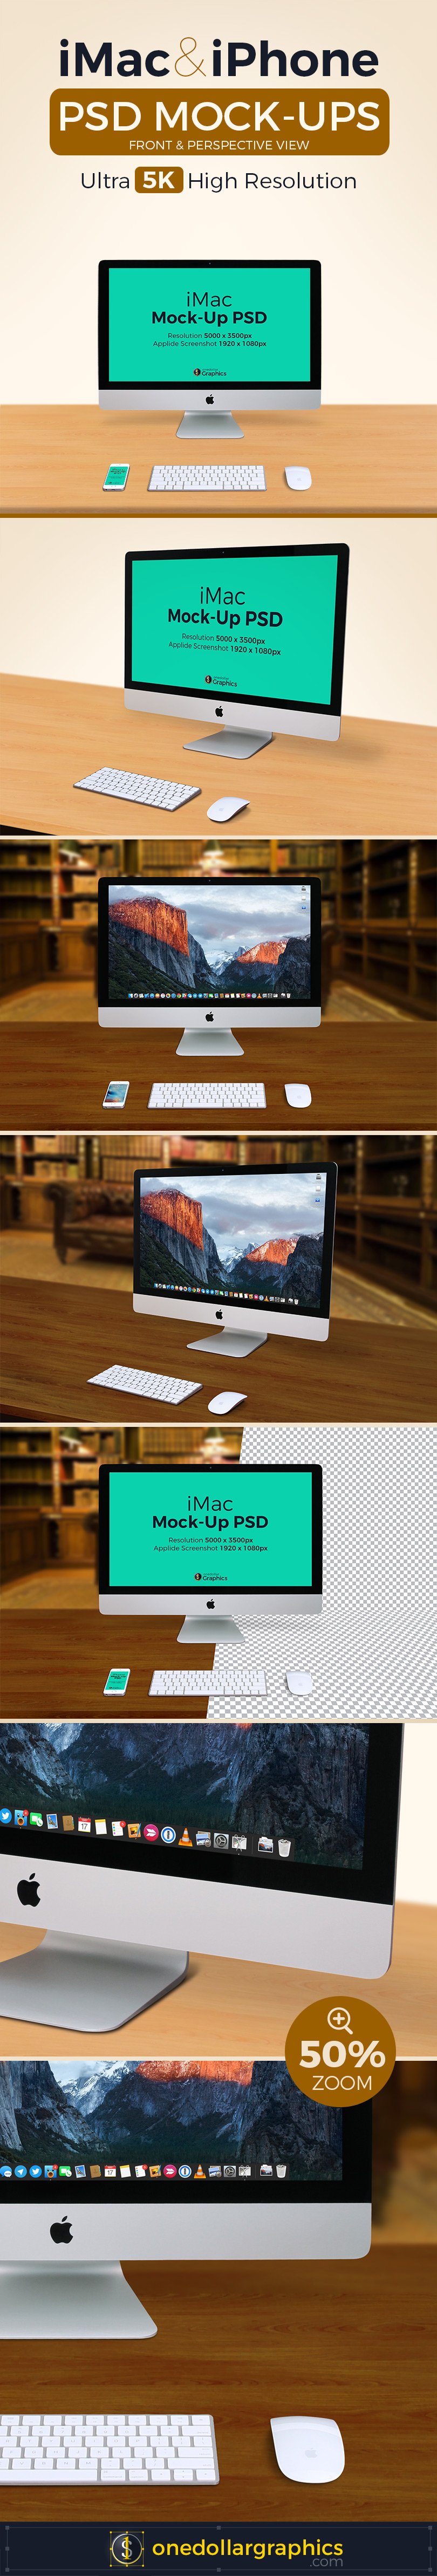 5k iMac Photo PSD Mock-Ups With Custom Background 3